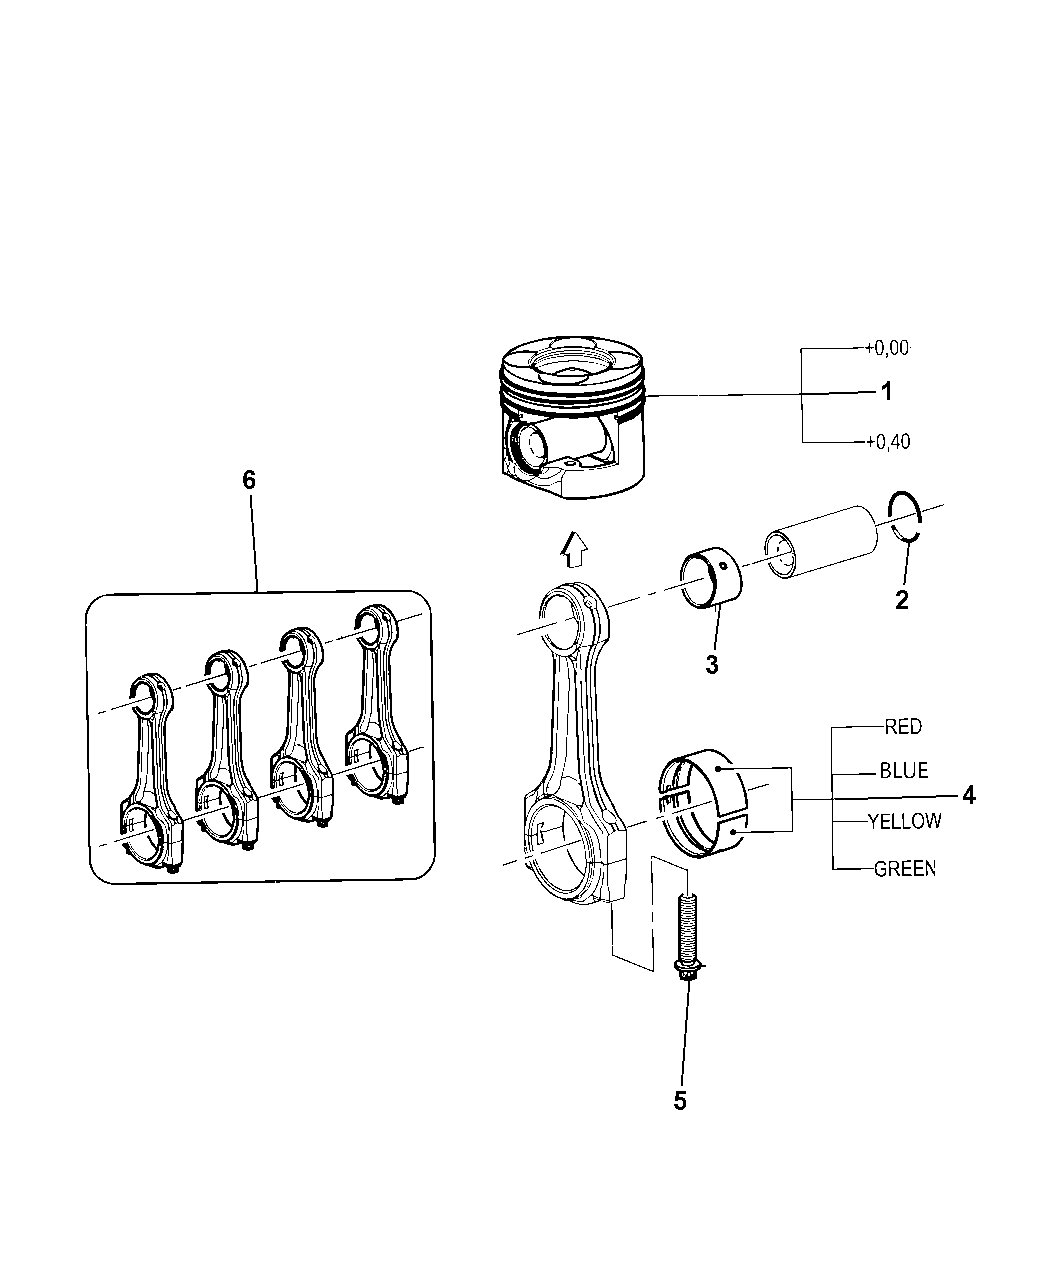 2009 Dodge Nitro Pistons Piston Rings Connecting Rods Engine Diagram Rod Bearing Thumbnail